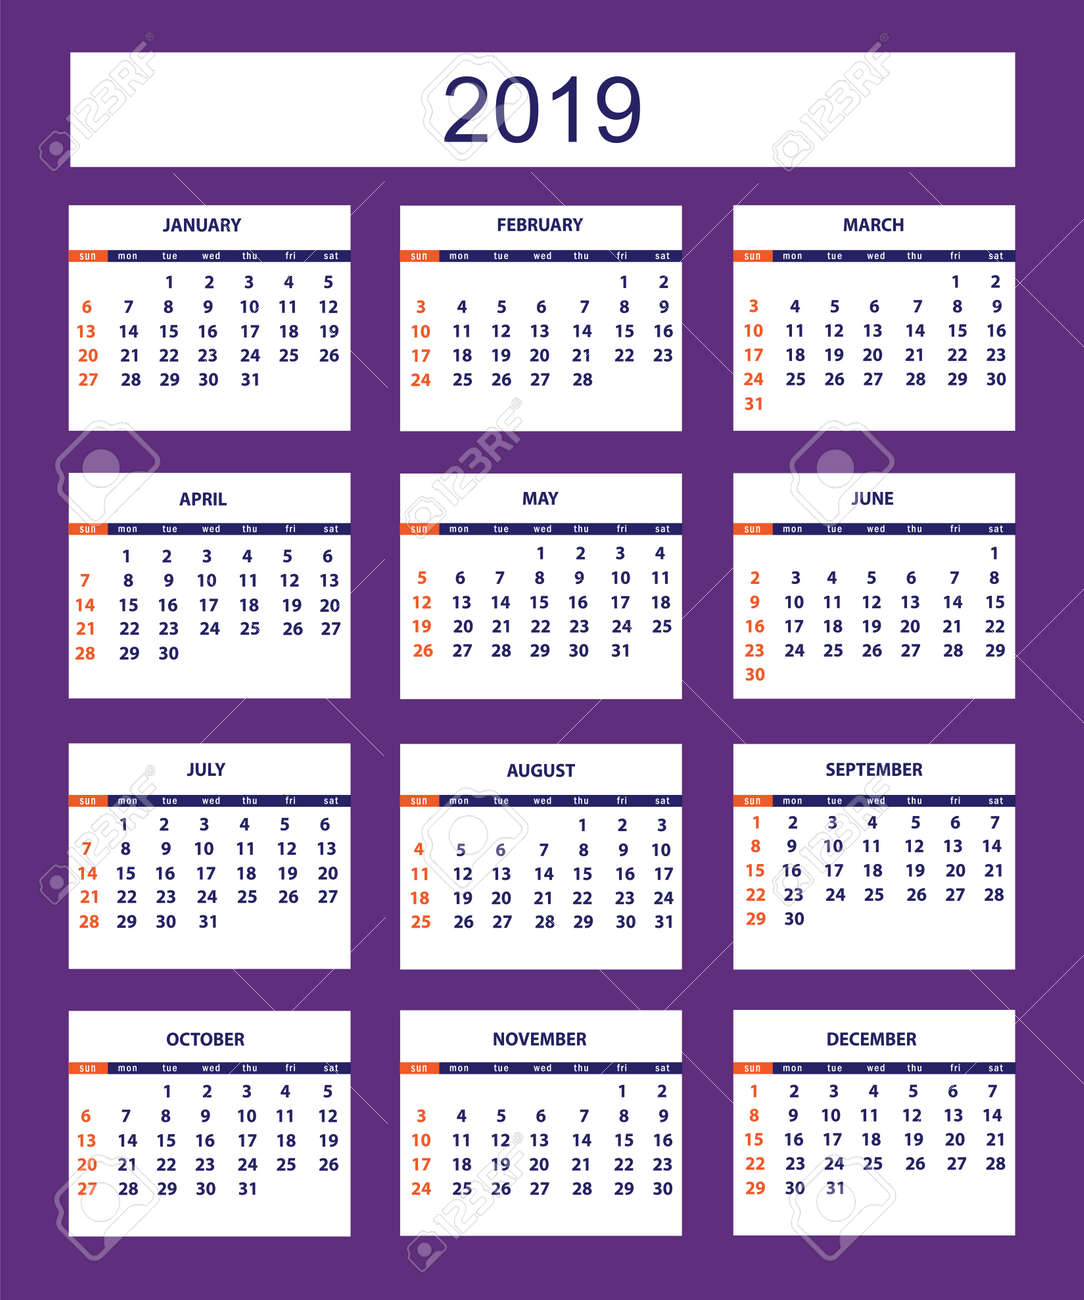 Calendario 2019 English.Classic American Calendar For Wall Year 2019 On The Violet Background